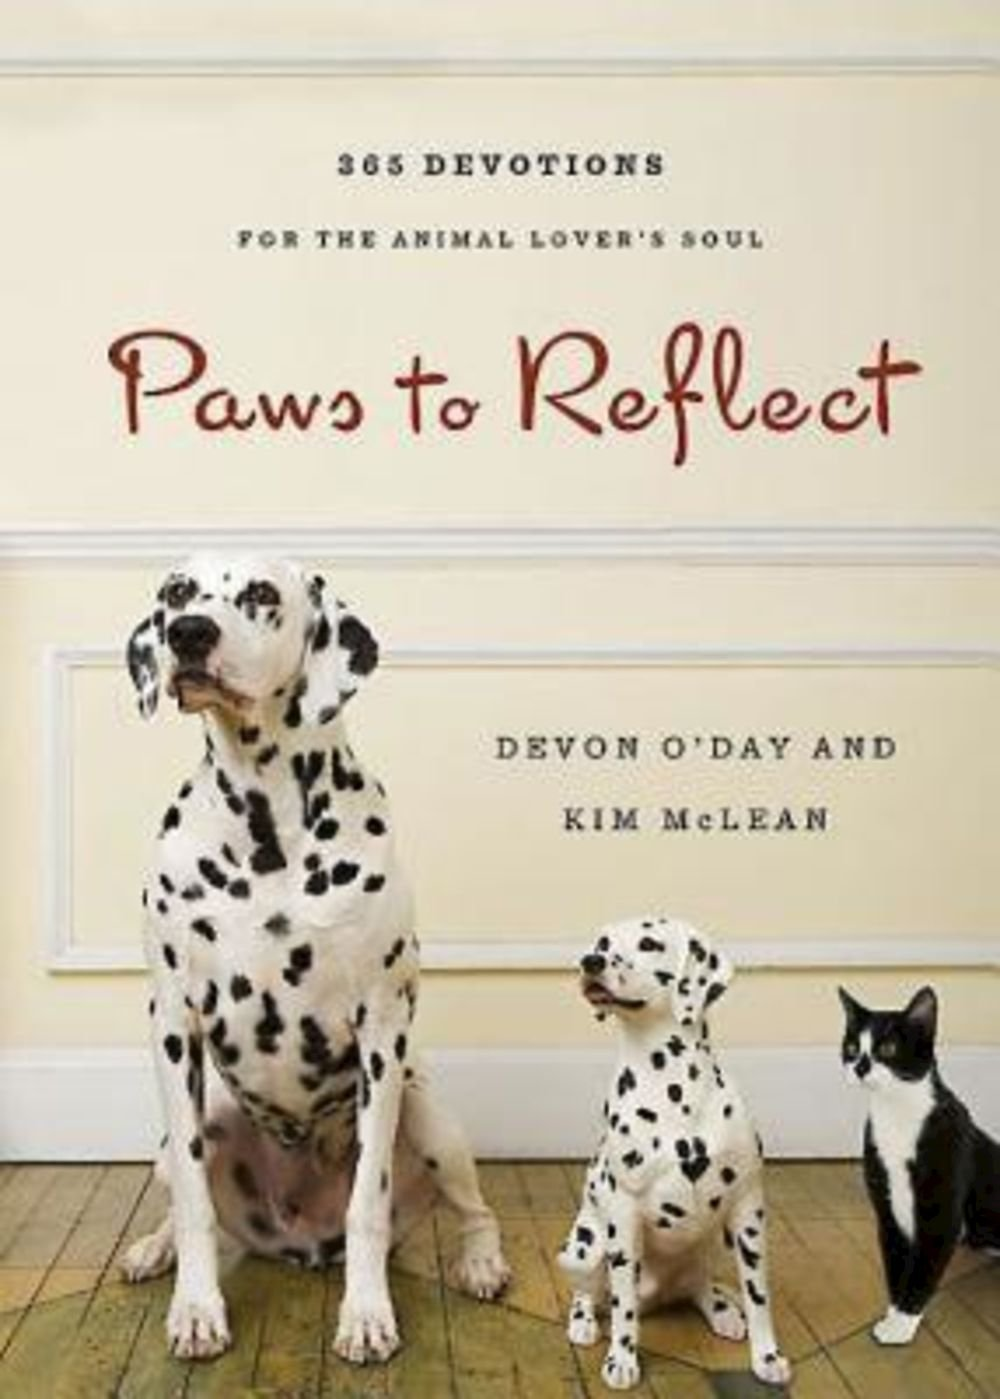 Paws to Reflect: 365 Daily Devotions for the Animal Lover's Soul: Kim  McLean, Devon O'Day: 9781426744174: Amazon.com: Books